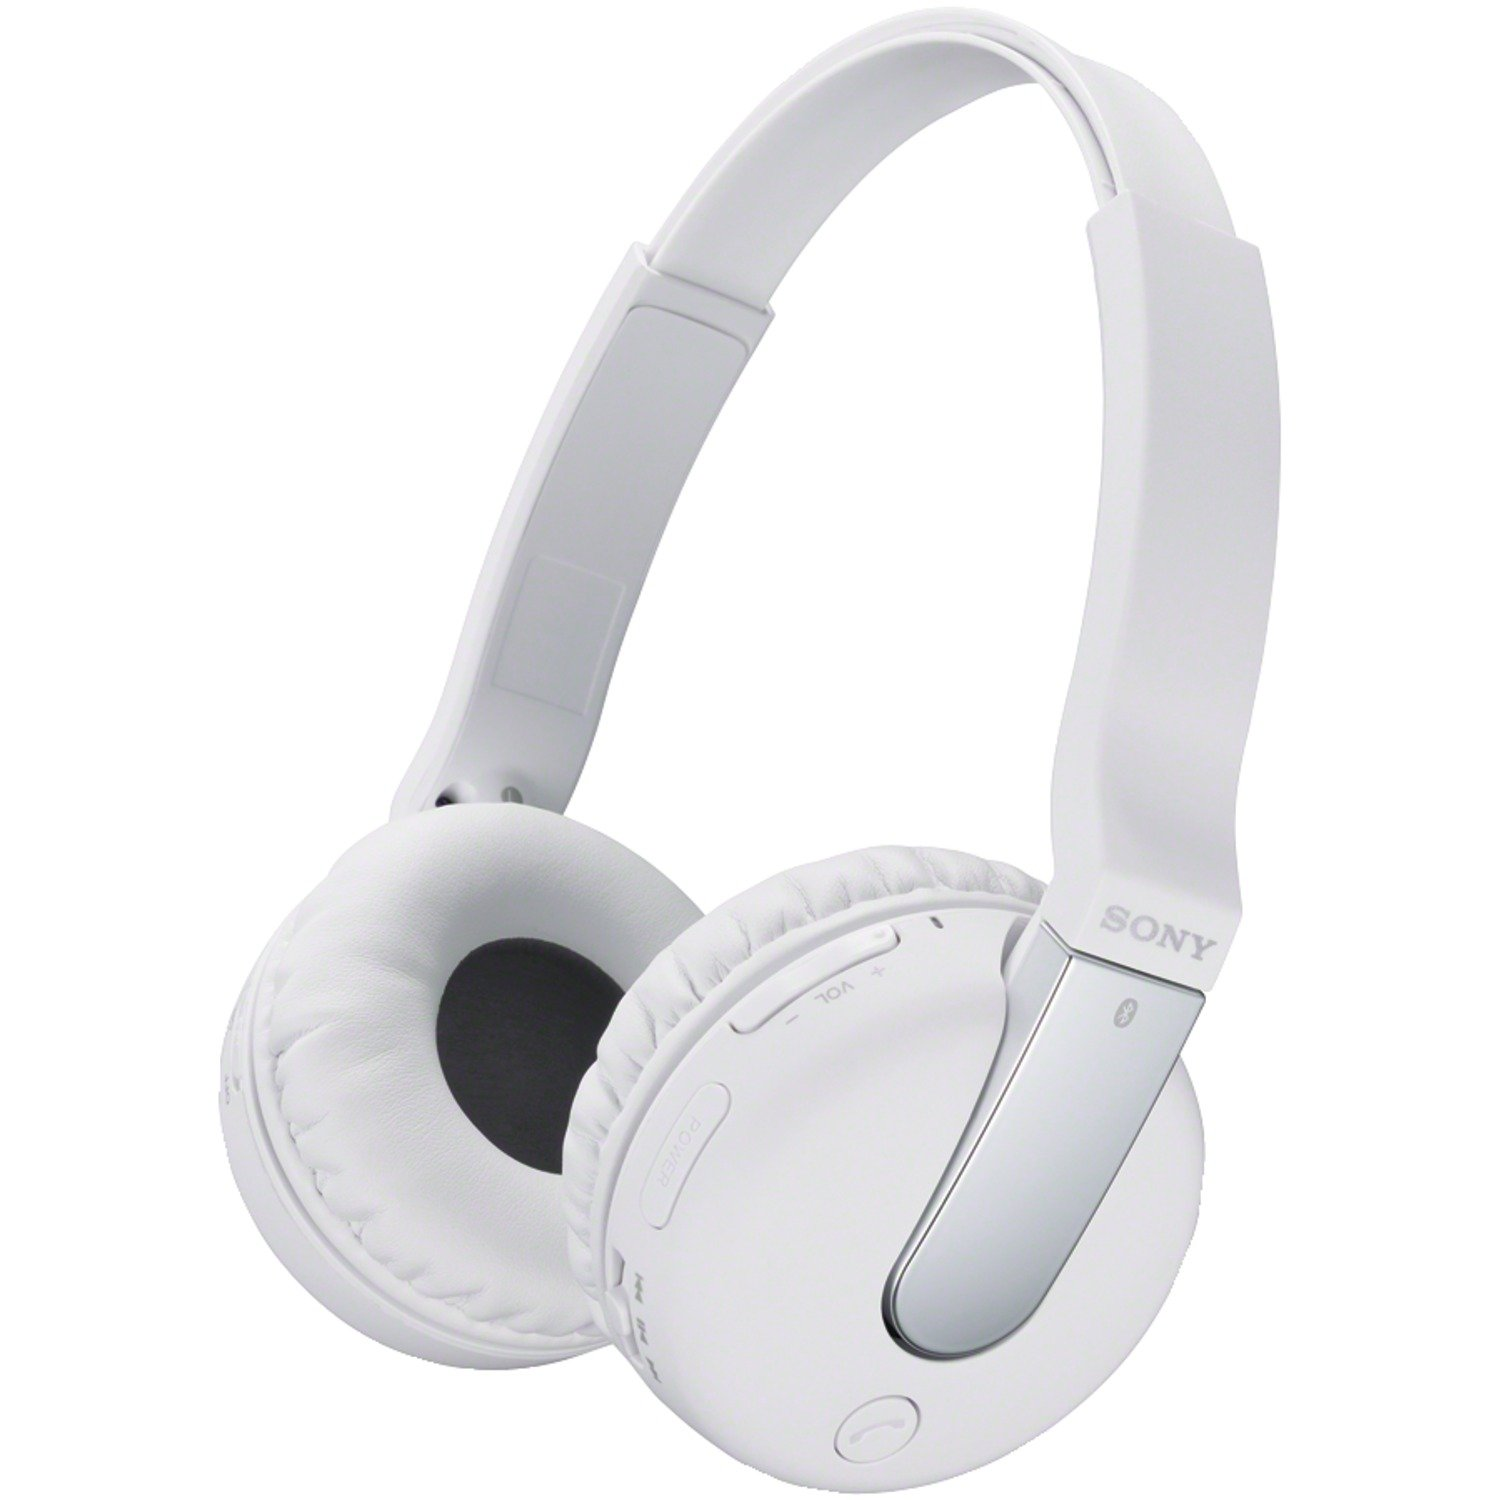 Sony DRBTN200 Bluetooth Headset (White)